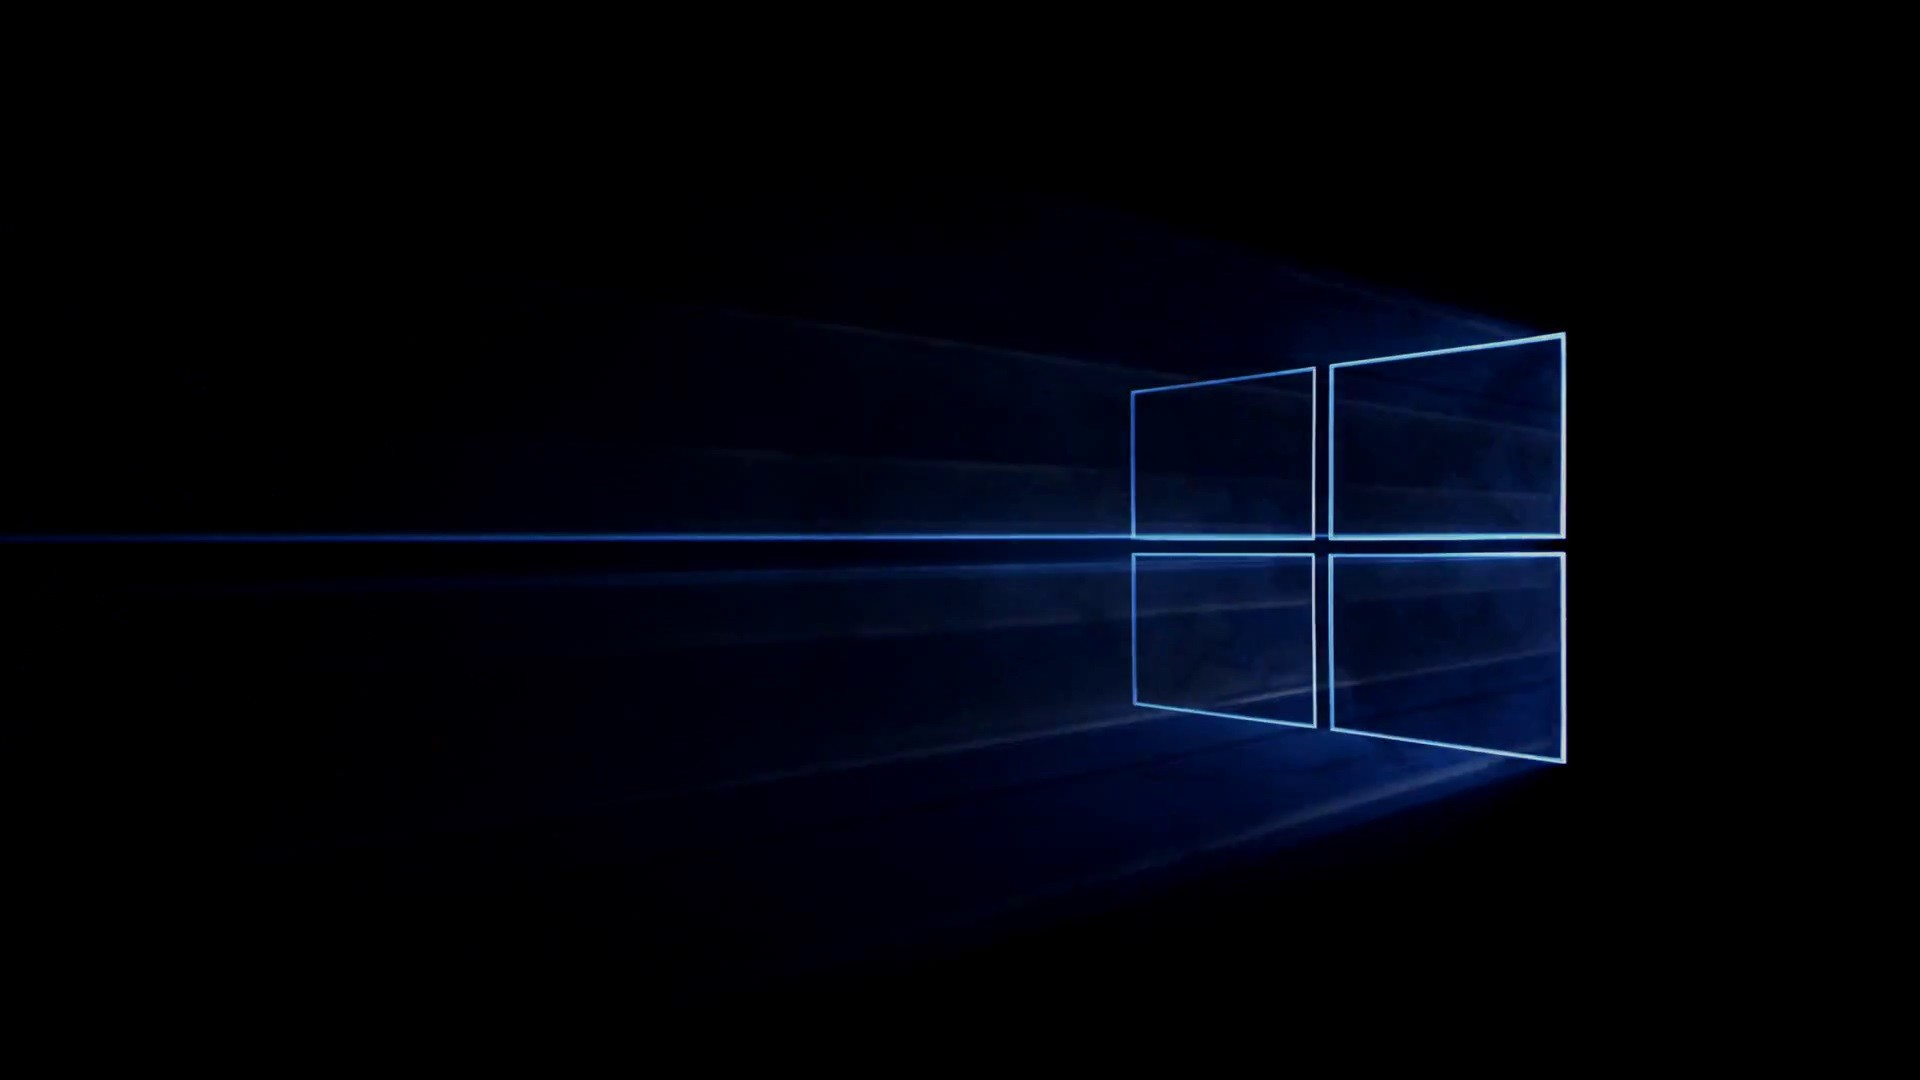 new windows 10 wallpapers leak in build 10154 screenshots